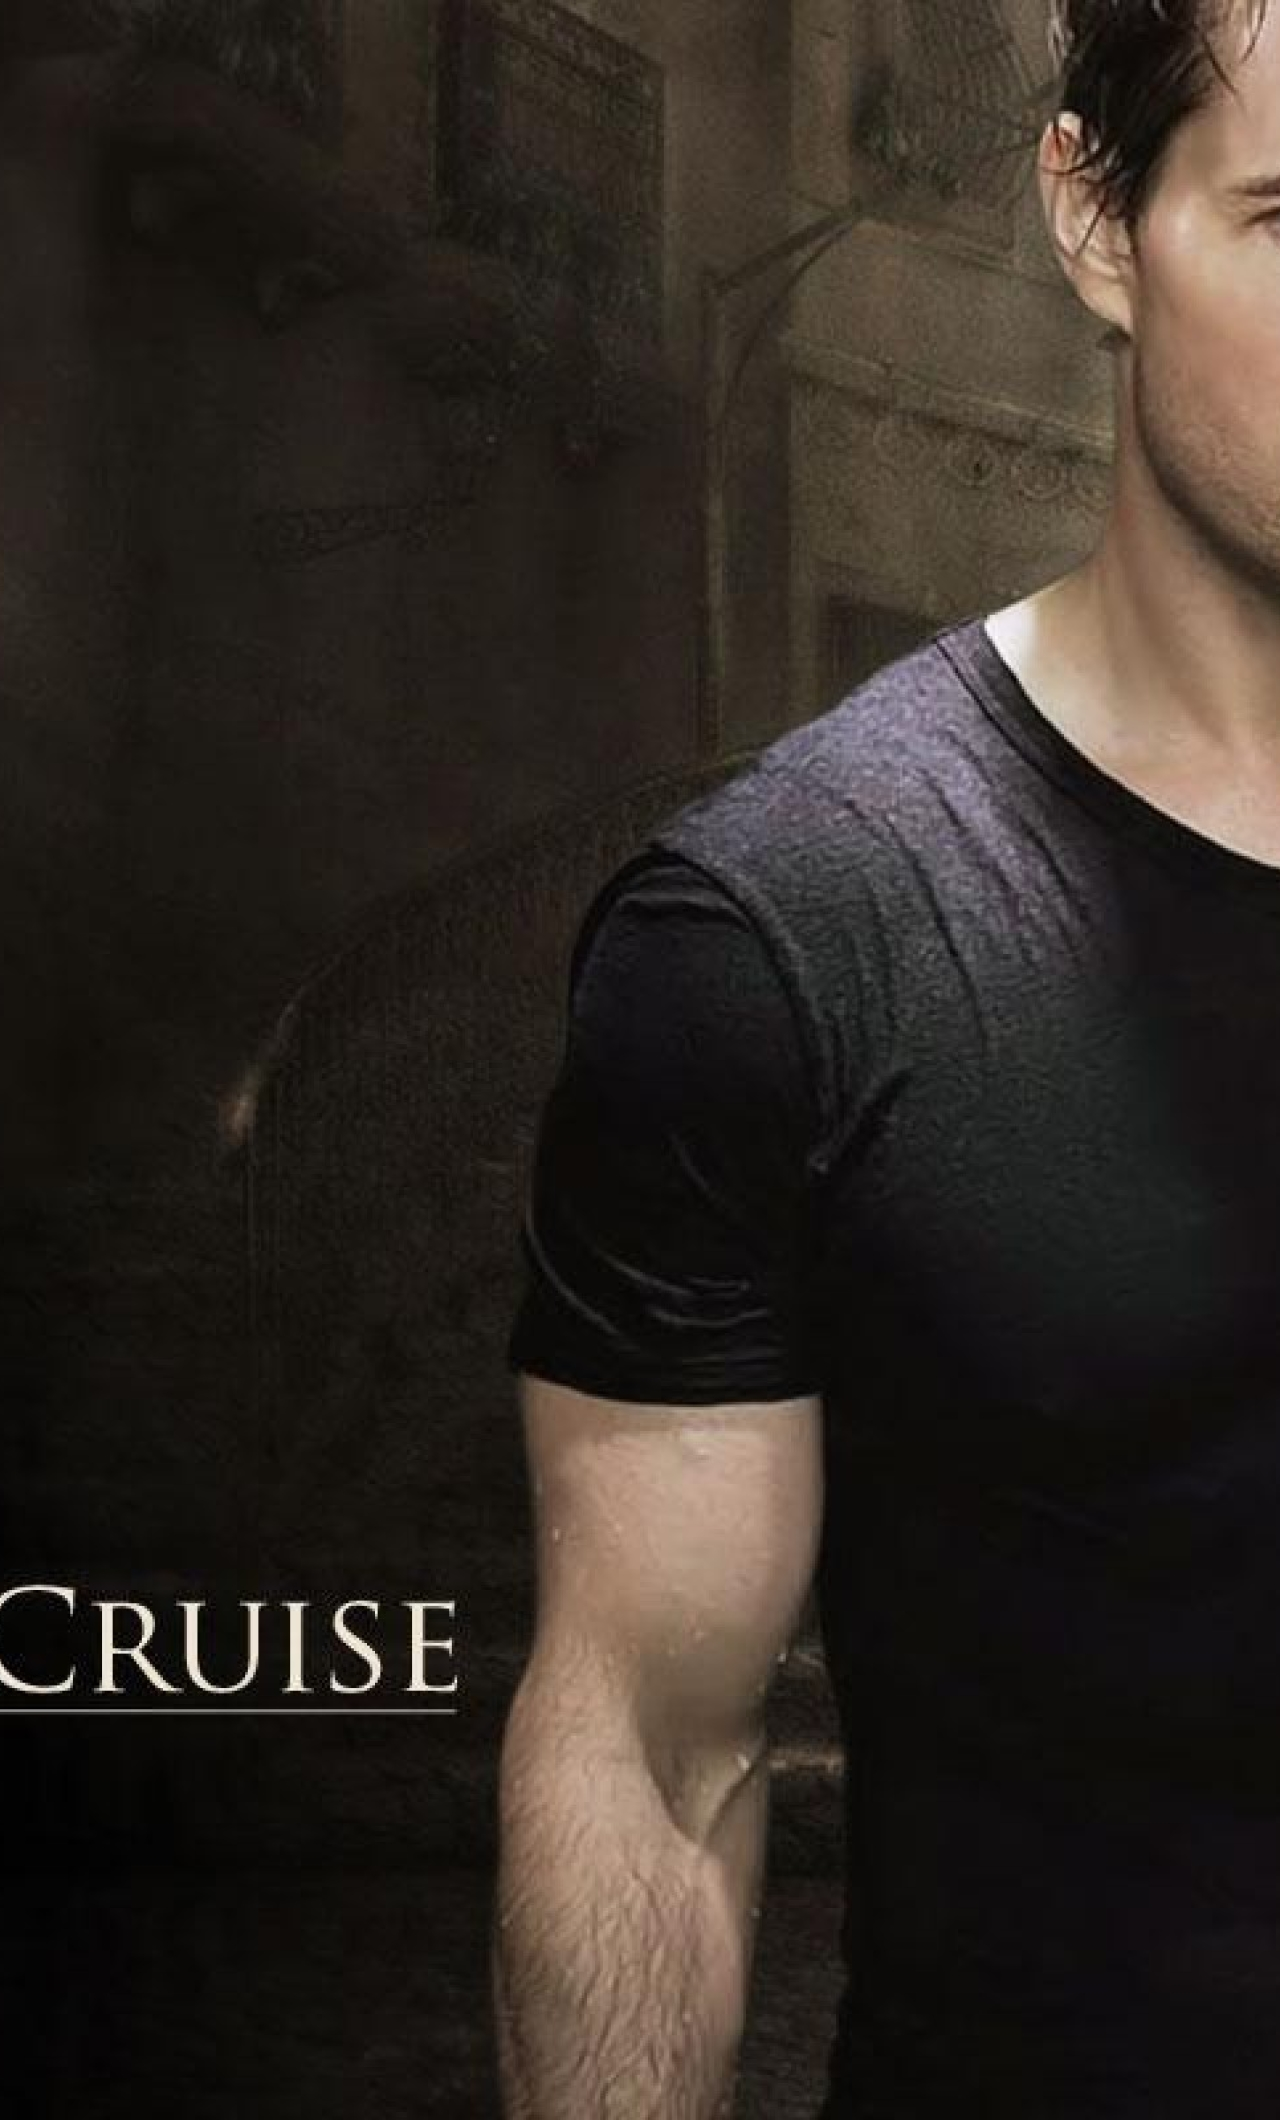 1280x2120 Tom Cruise Fit Body wallpaper iPhone 6 plus Wallpaper 1280x2120